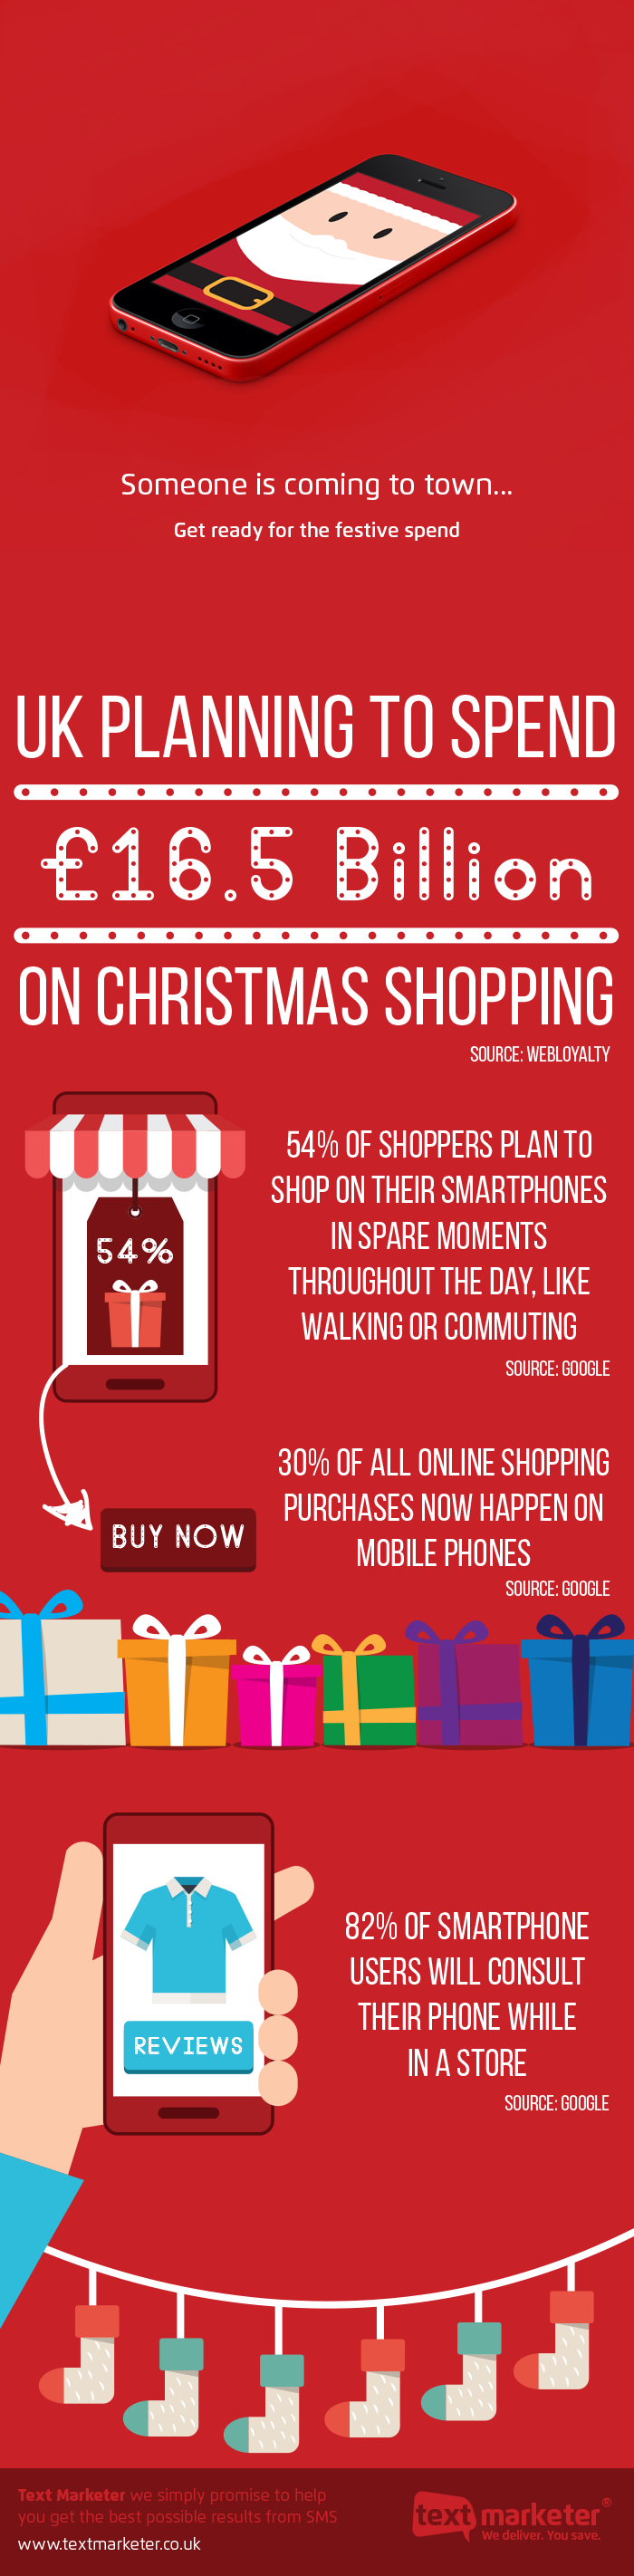 Christmas spending infographic